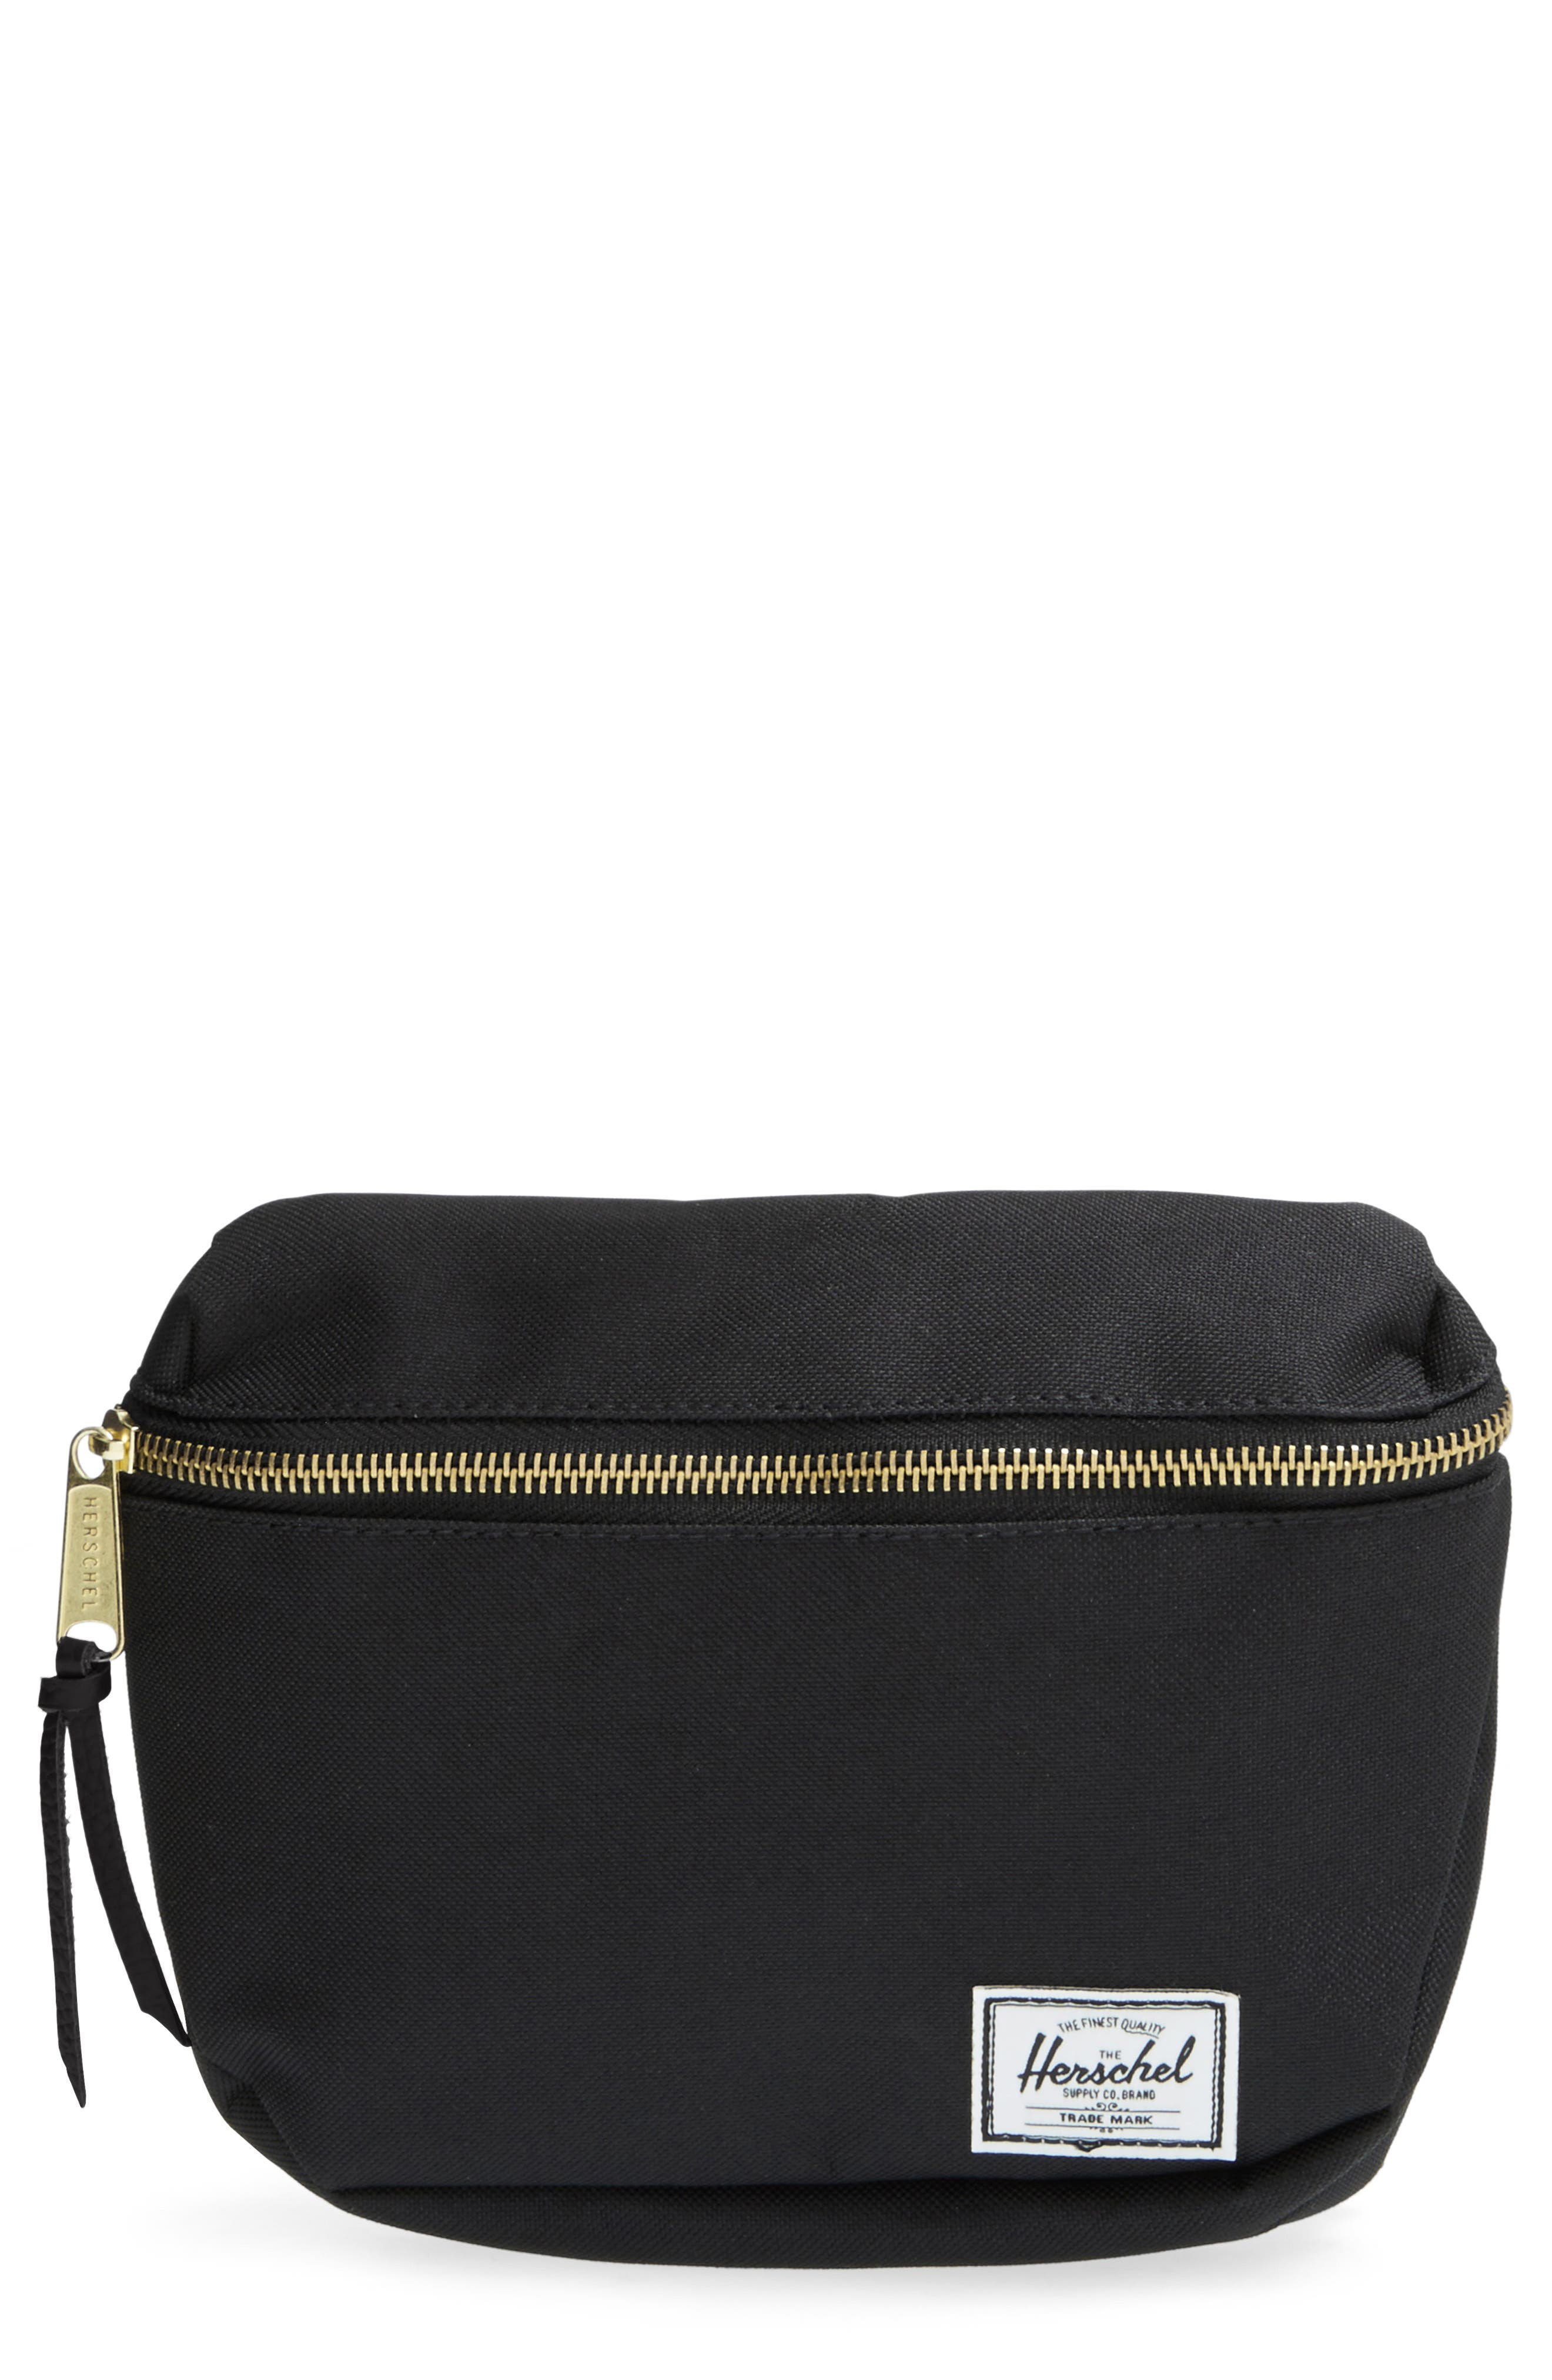 Fifteen Belt Bag,                             Main thumbnail 1, color,                             BLACK